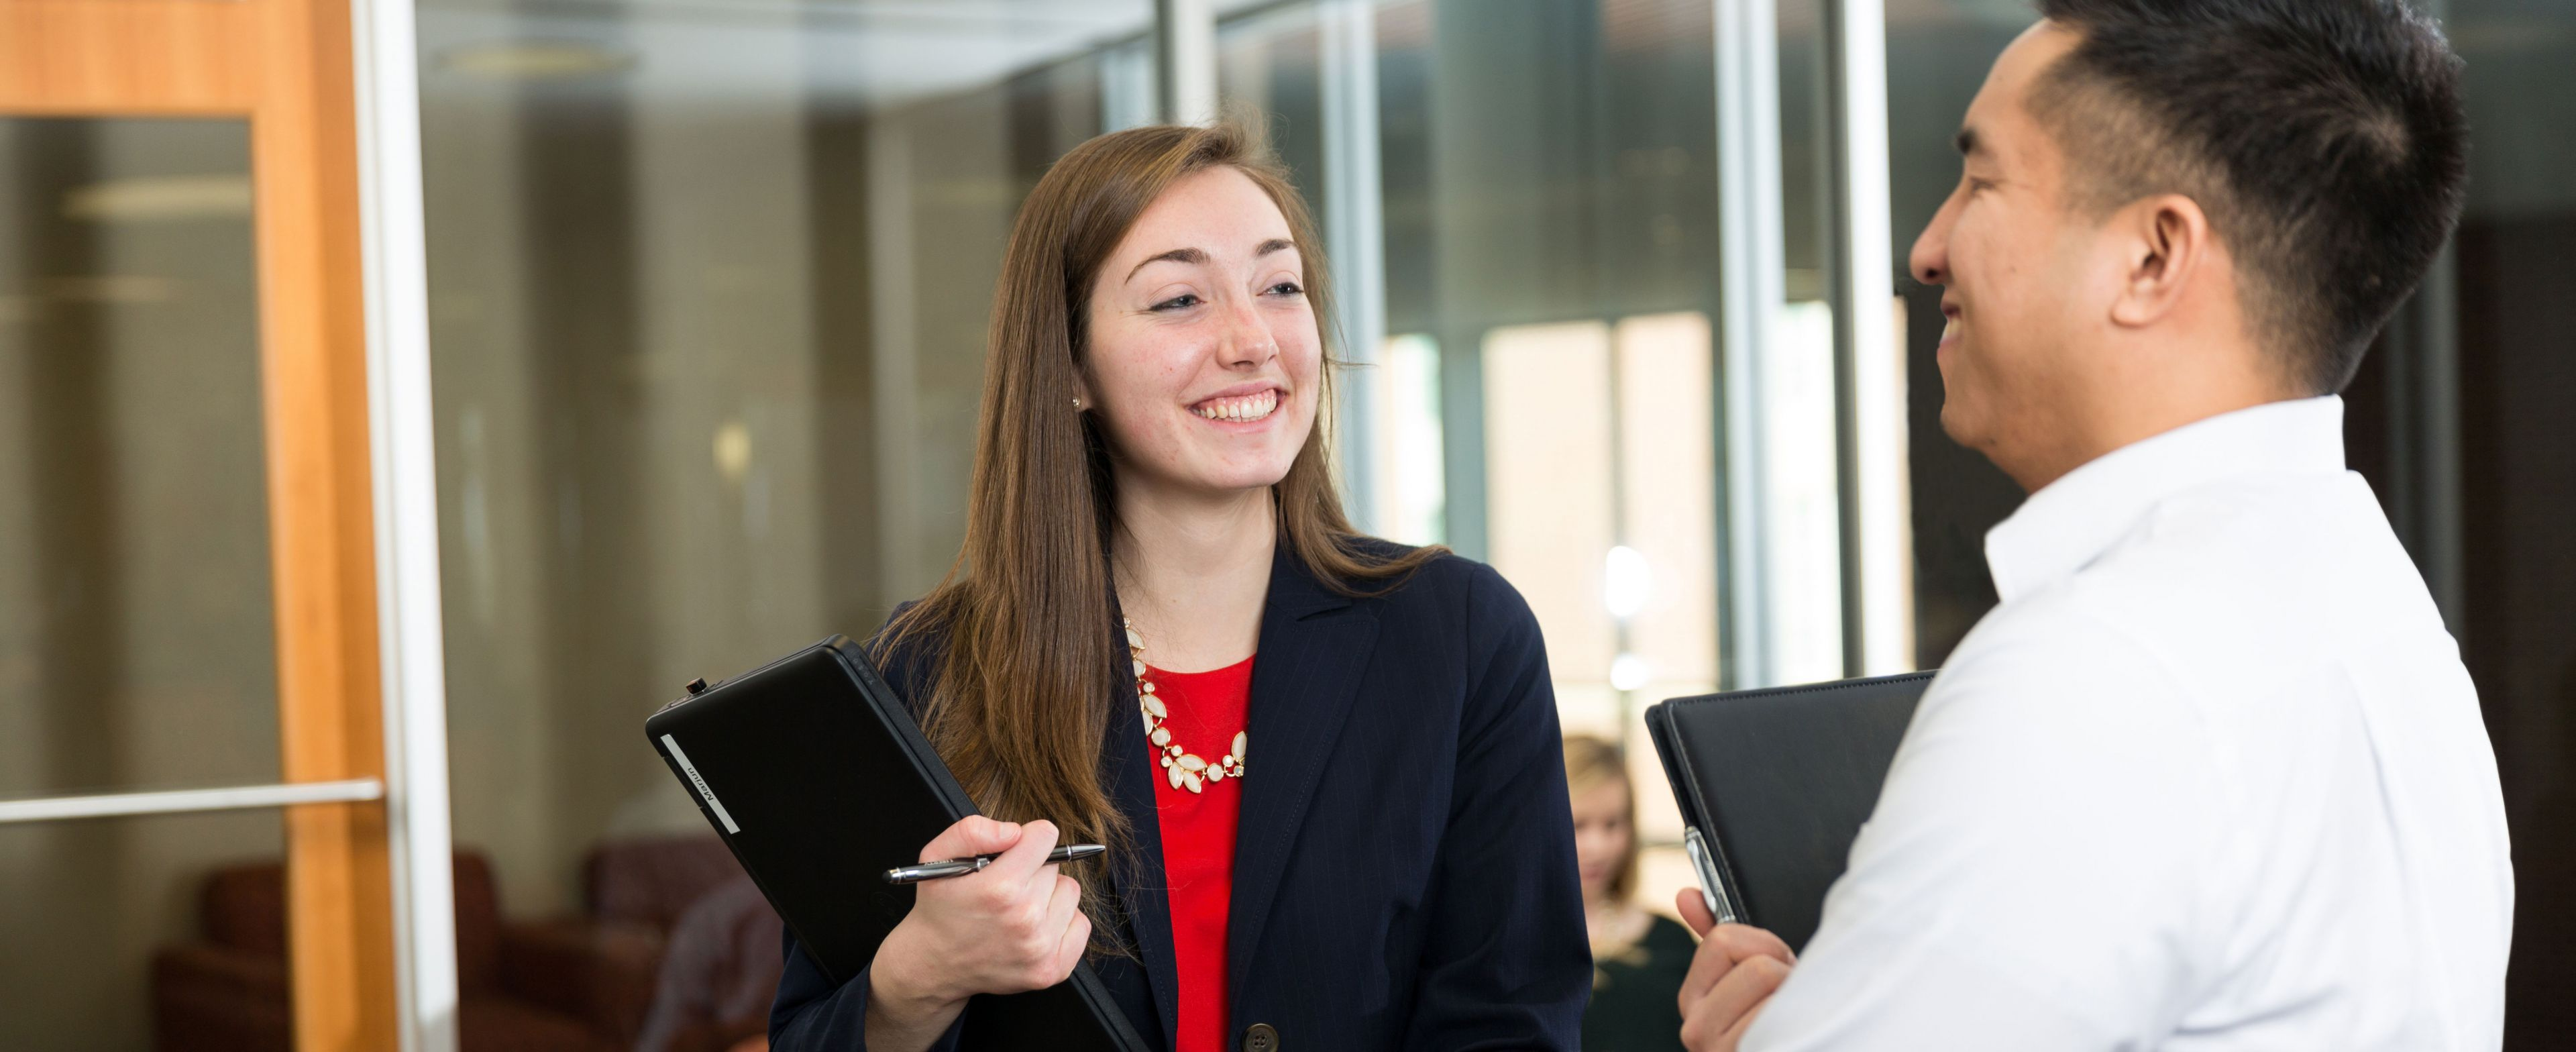 MBA In Strategic Media And Digital Content Online Degree